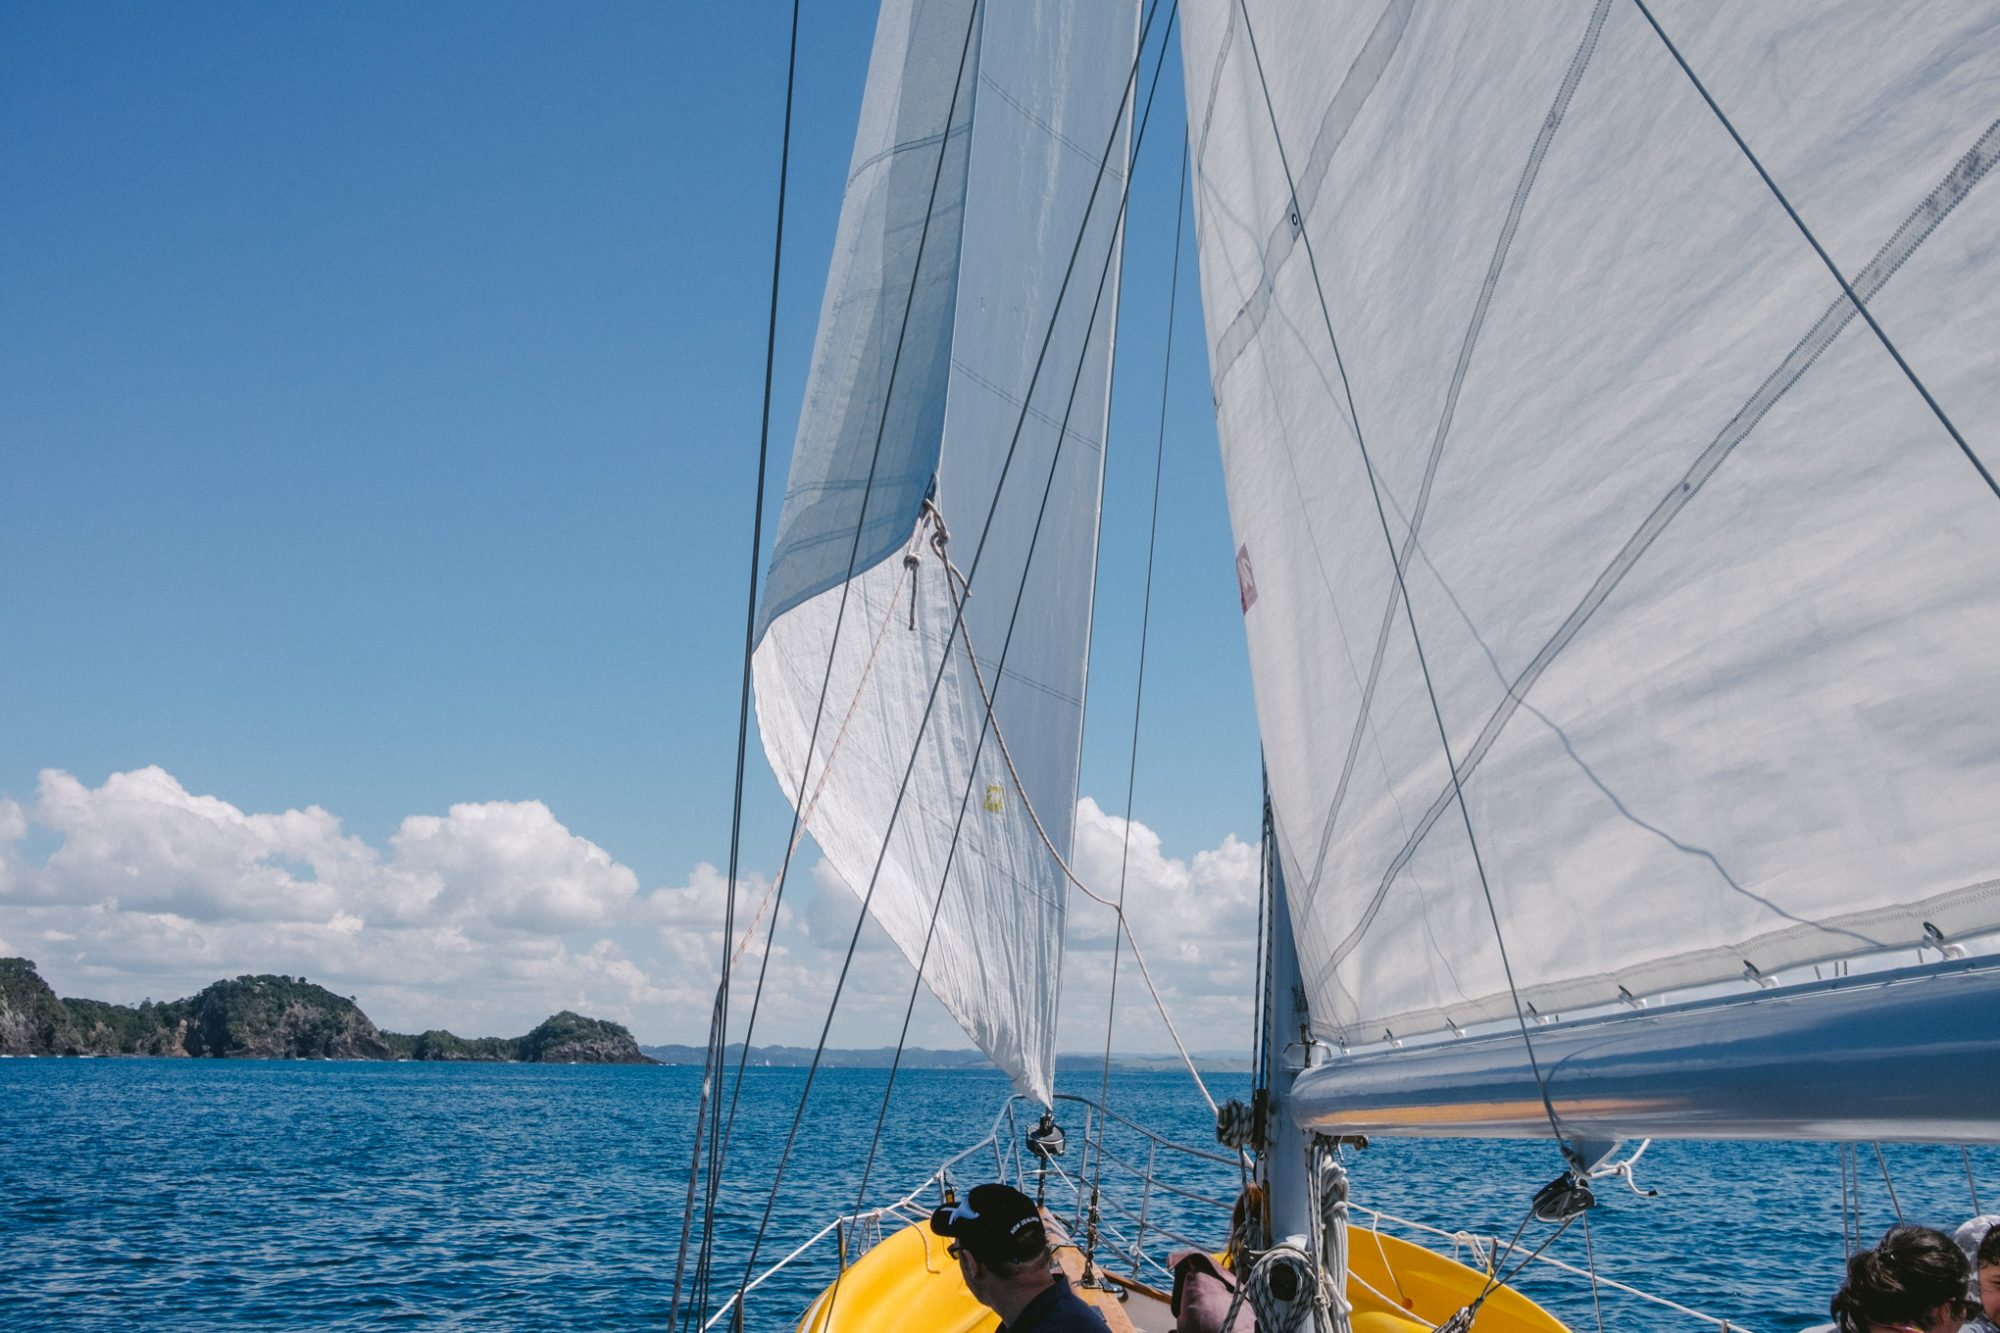 Vigilant Yacht Charter Bay of Islands Paihia Russell Wharf